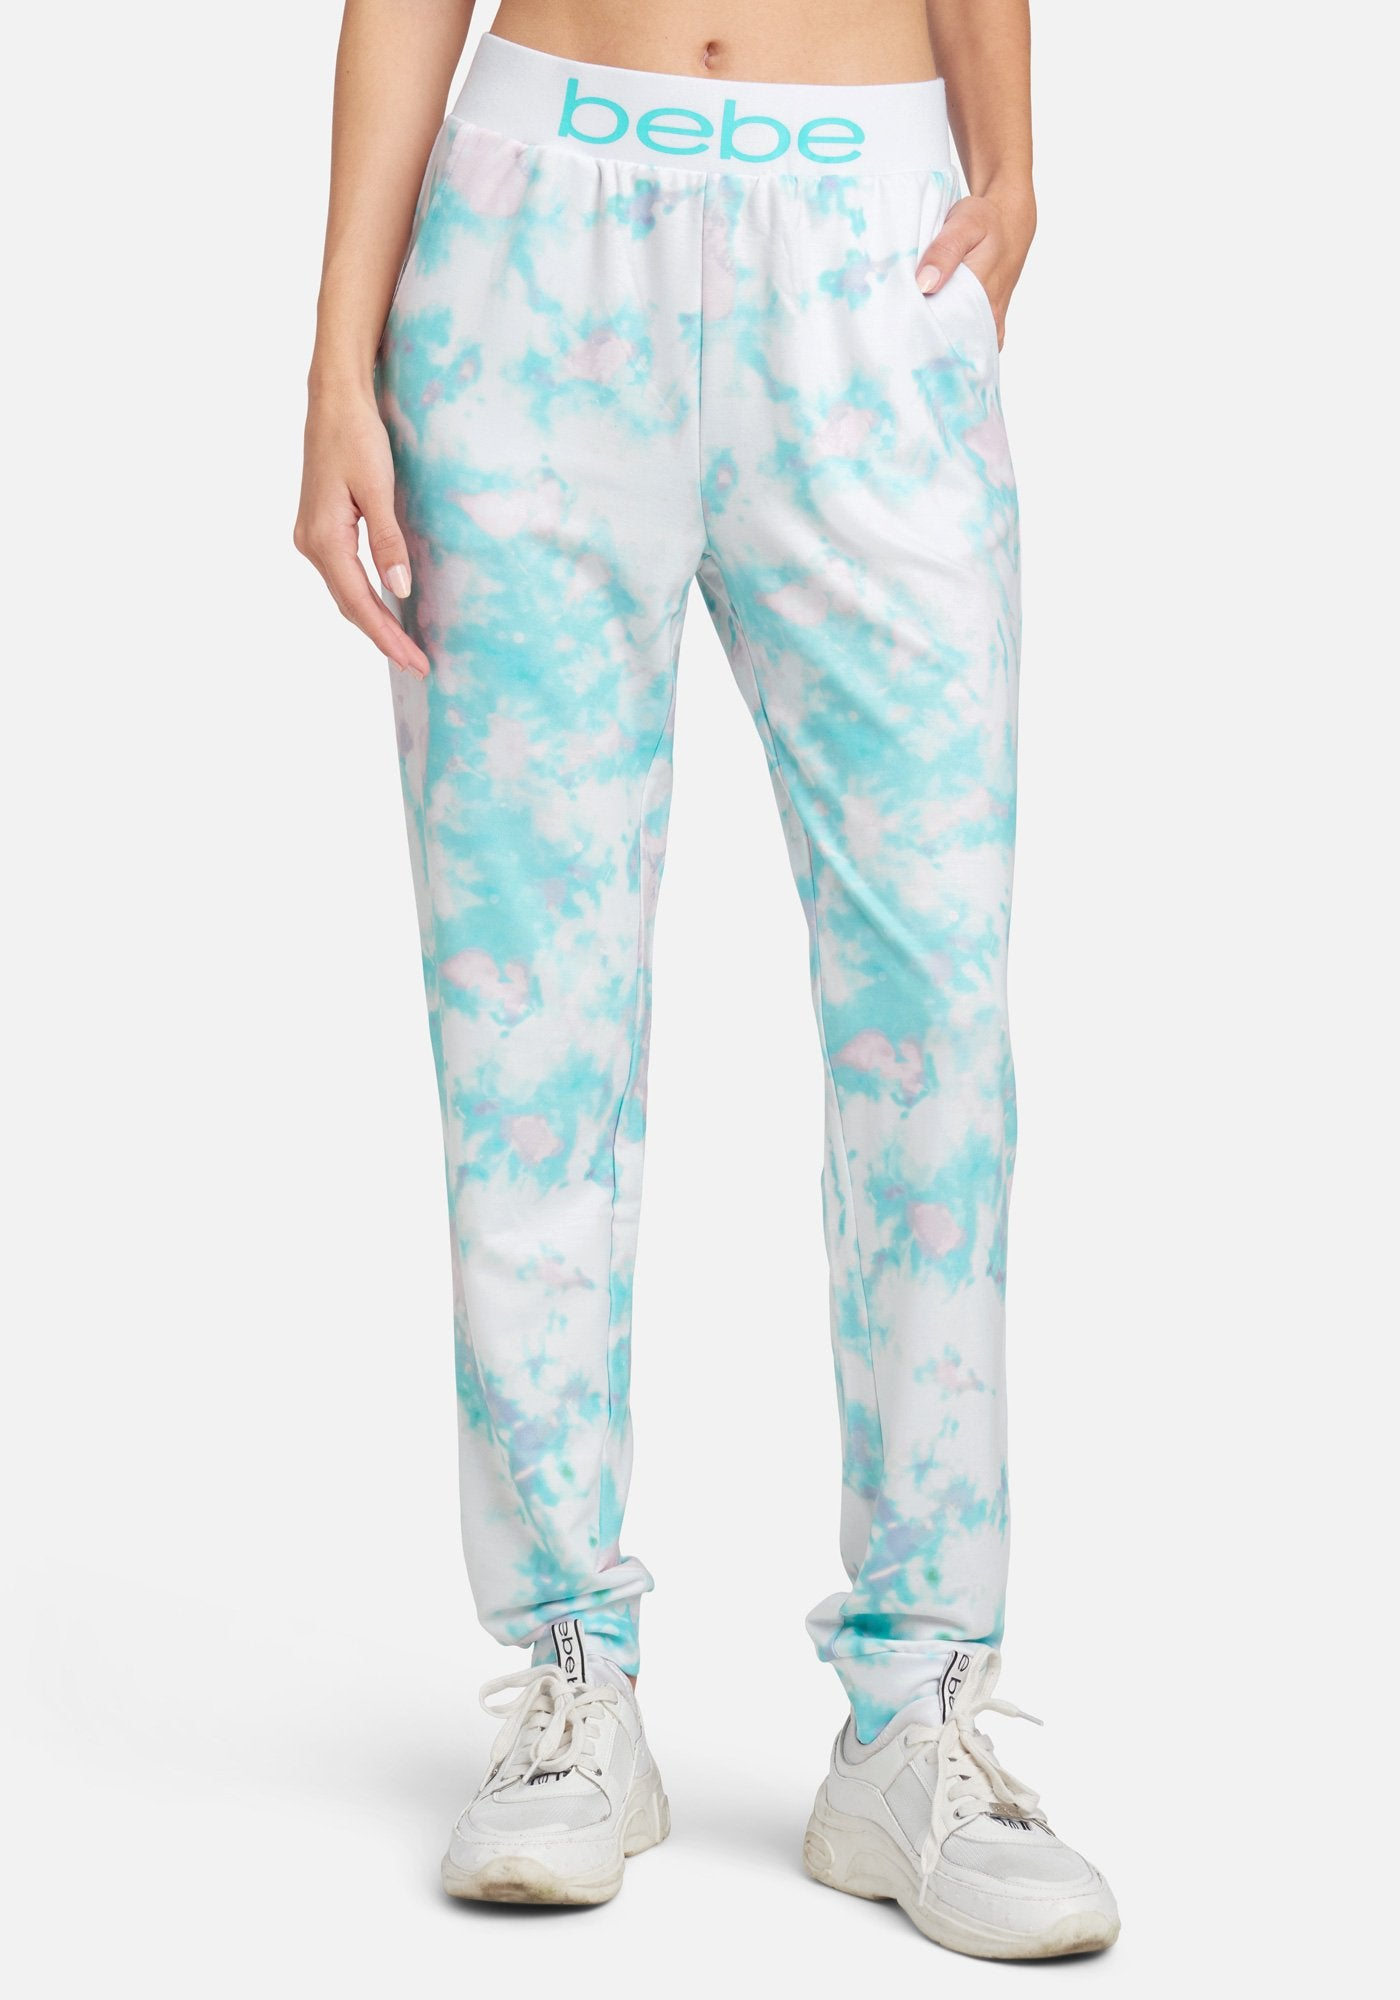 Women's Bebe Logo Printed Jogger Pant, Size Small in Blue Lagoon Mix Spandex